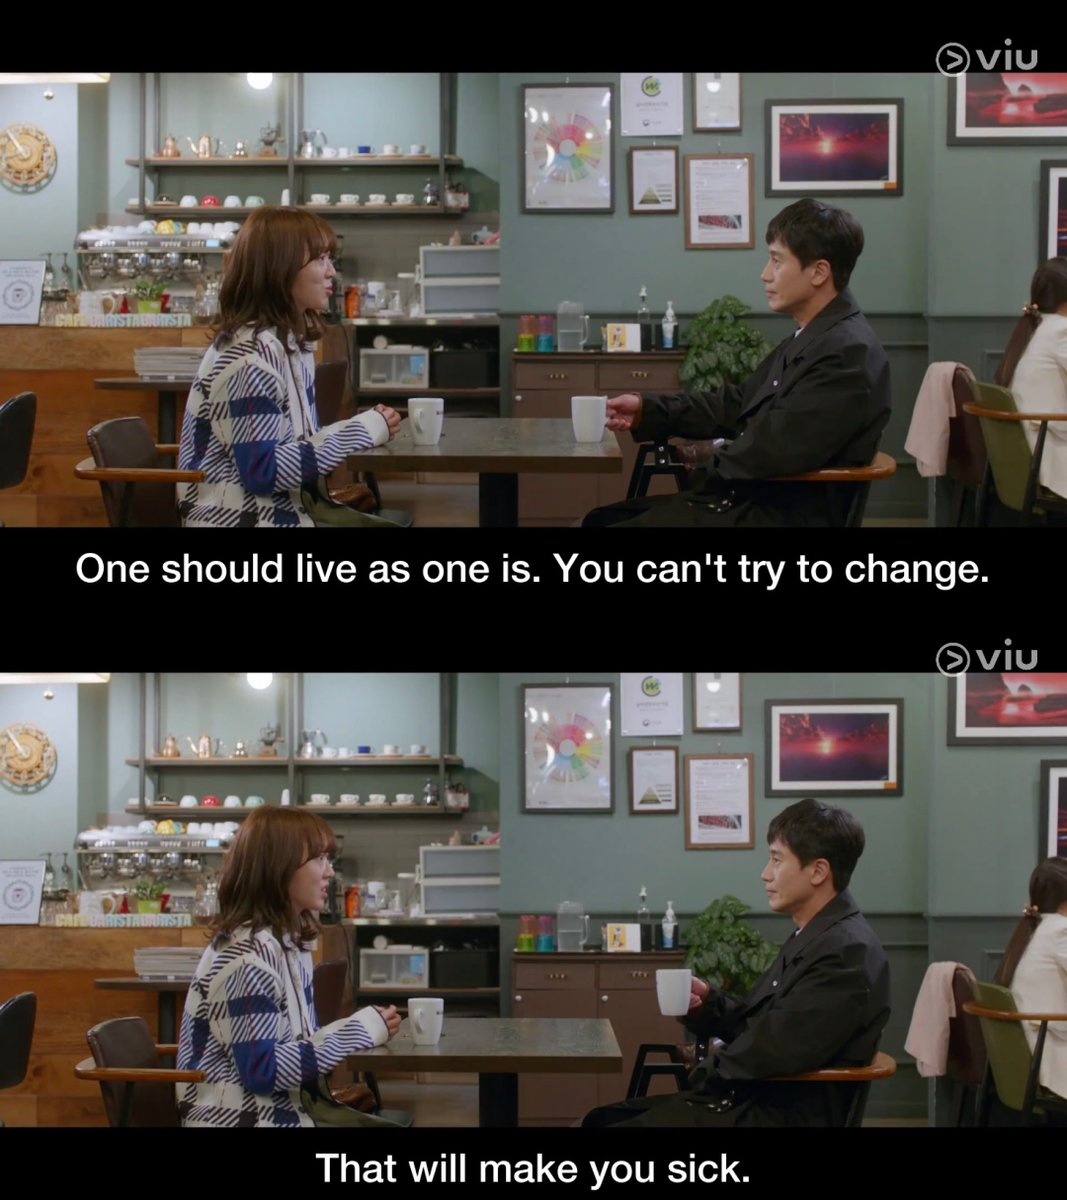 Tbvh, weve been enjoying our binge-watching on @ViuSG because of the variety of shows available! For todays #MondayMotivation, heres something from #FixYou, a #kdrama which focuses on the issue of mental illness (and health). What are YOU watching these days?